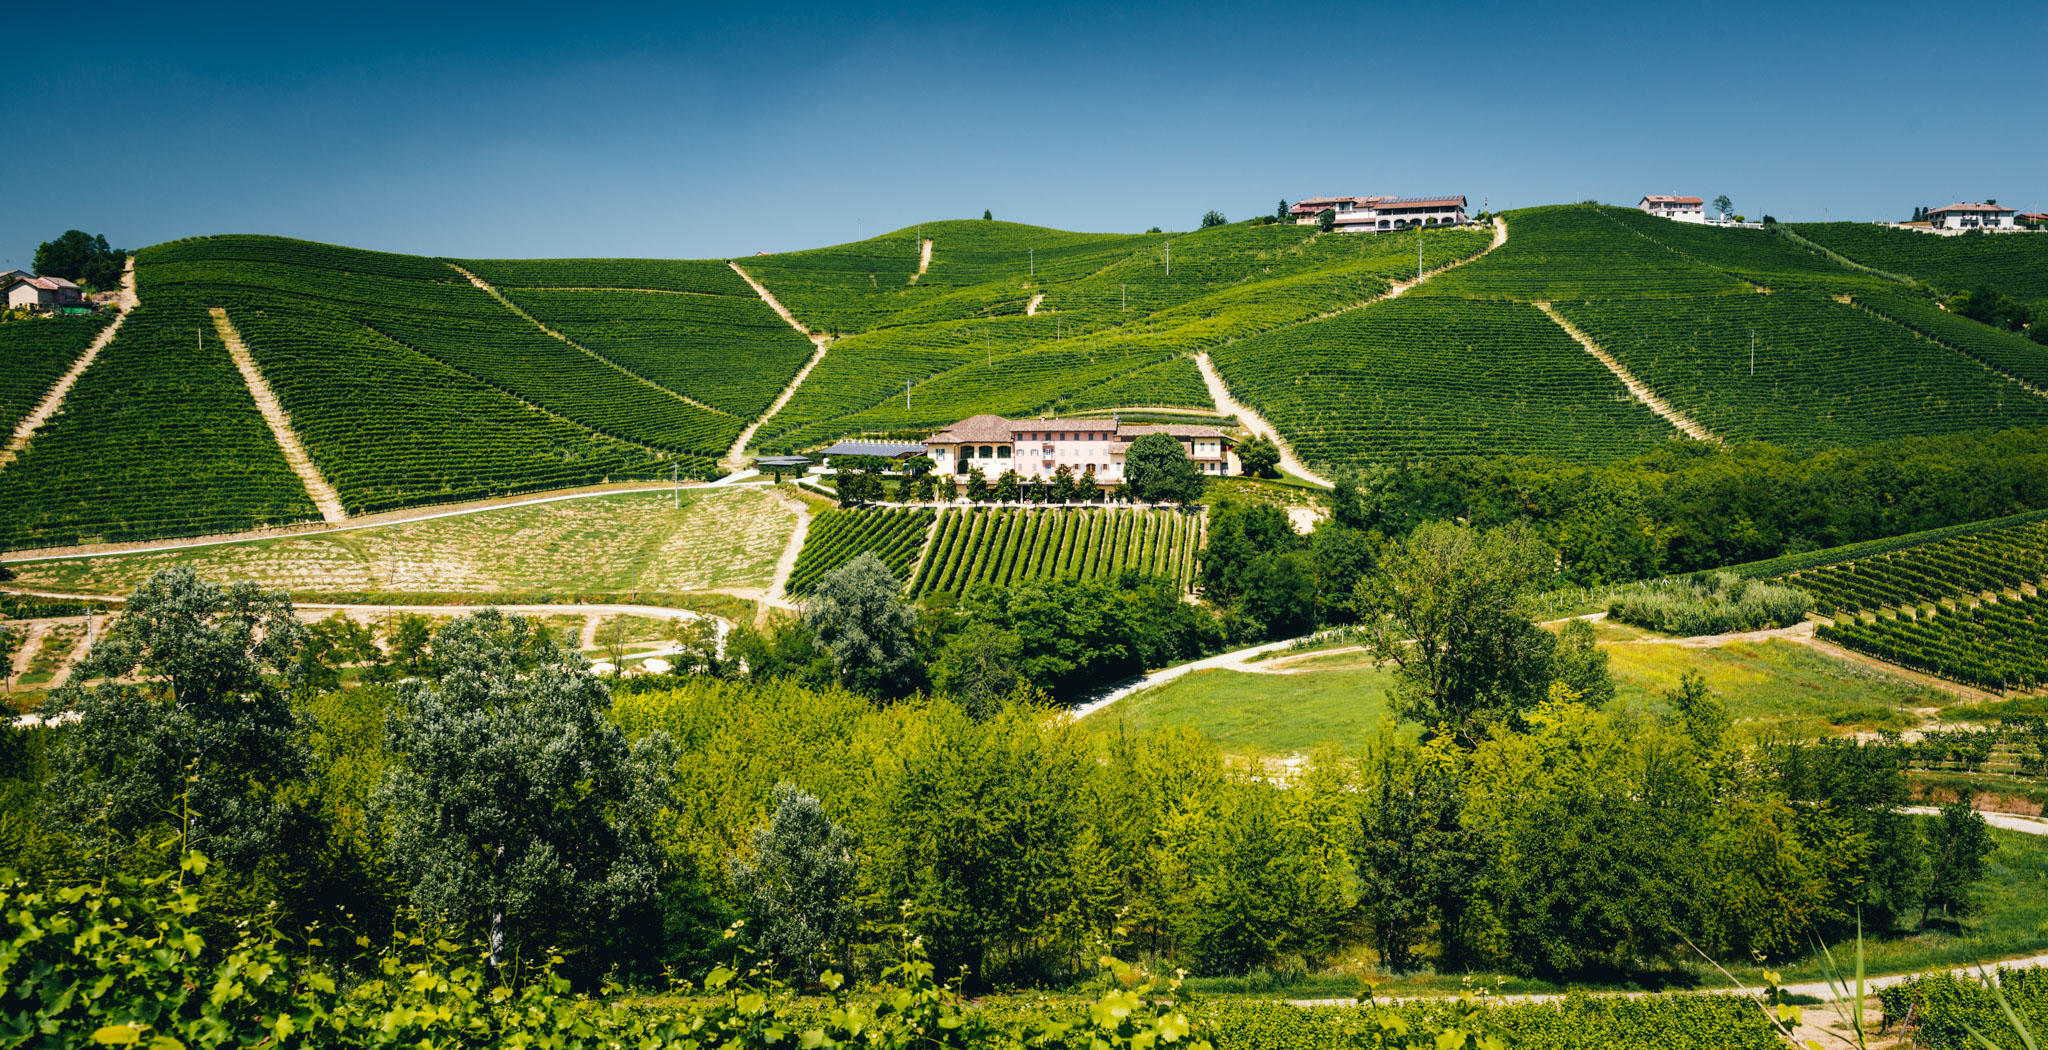 Italy : Piedmont : Asili, Martinenga and Rabaja vineyards in Barbaresco, with Marchesi di Gresy's estate in the middle